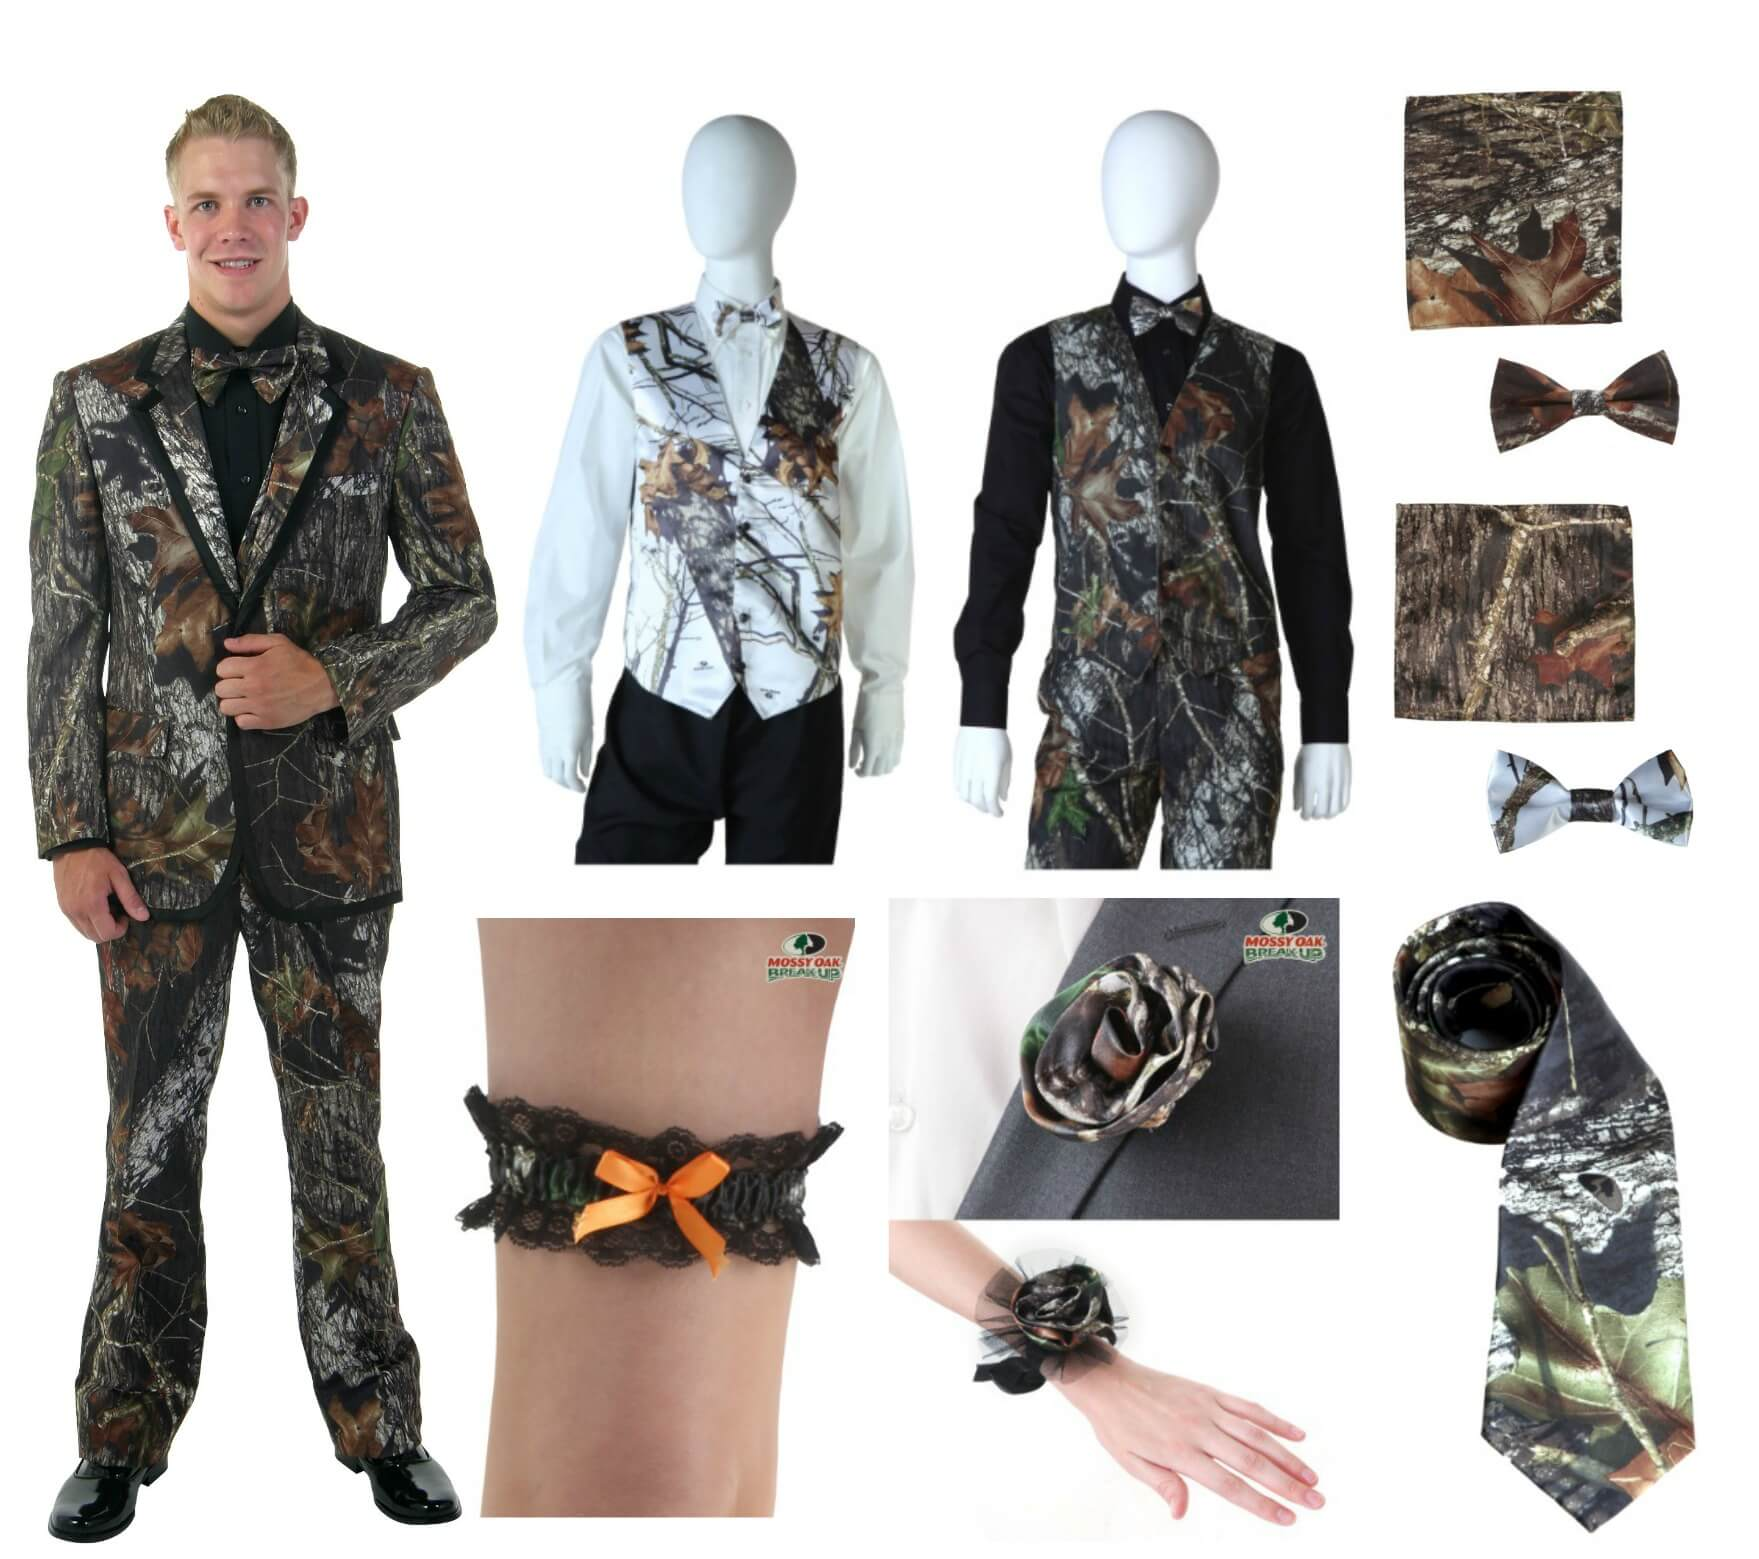 Camo and Mossy Oak Tuxedos